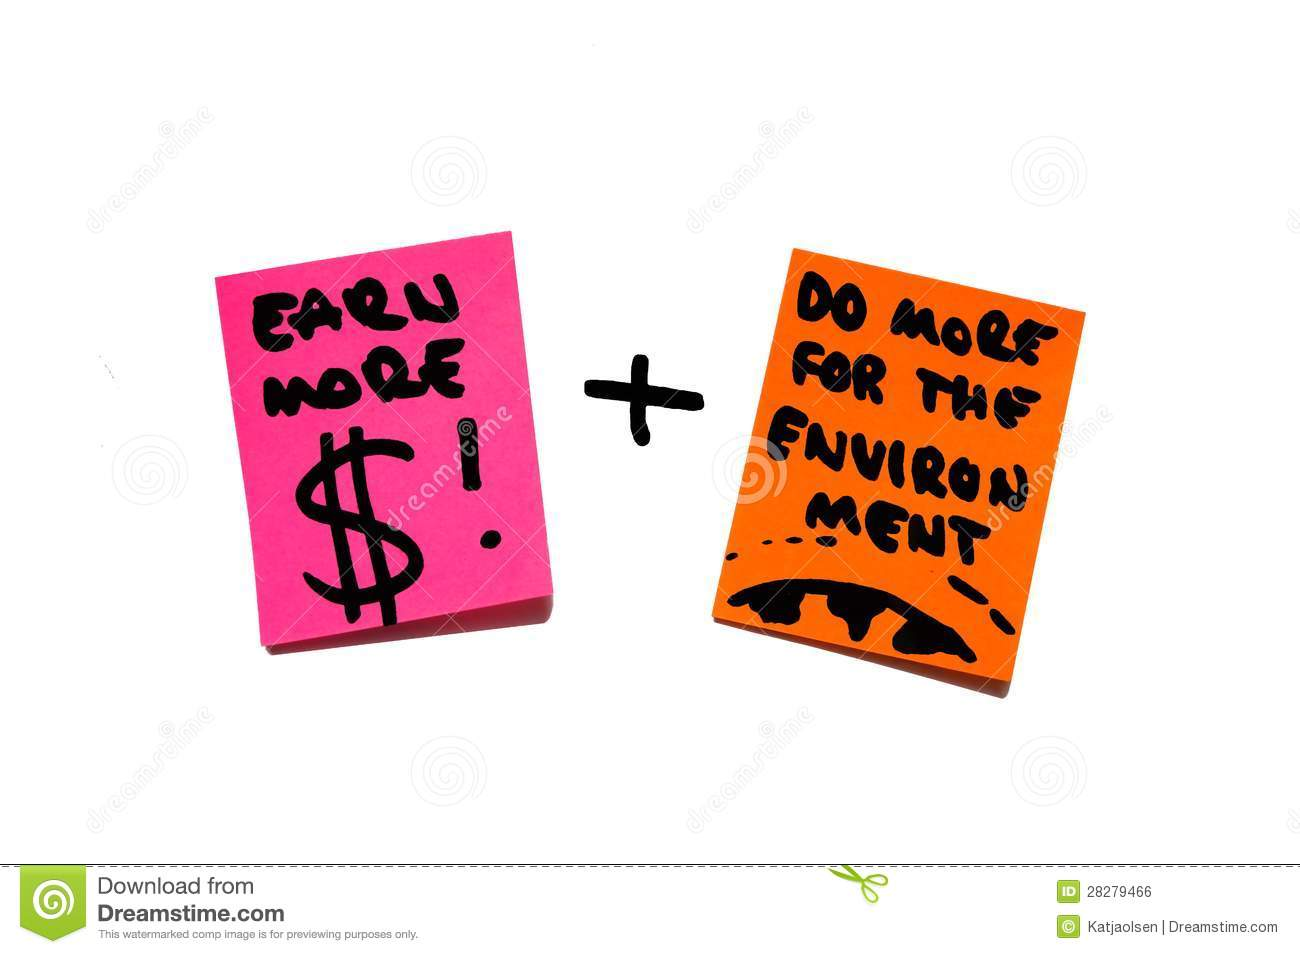 Money, wealth, economy versus environment, earth, responsibility. post it notes.